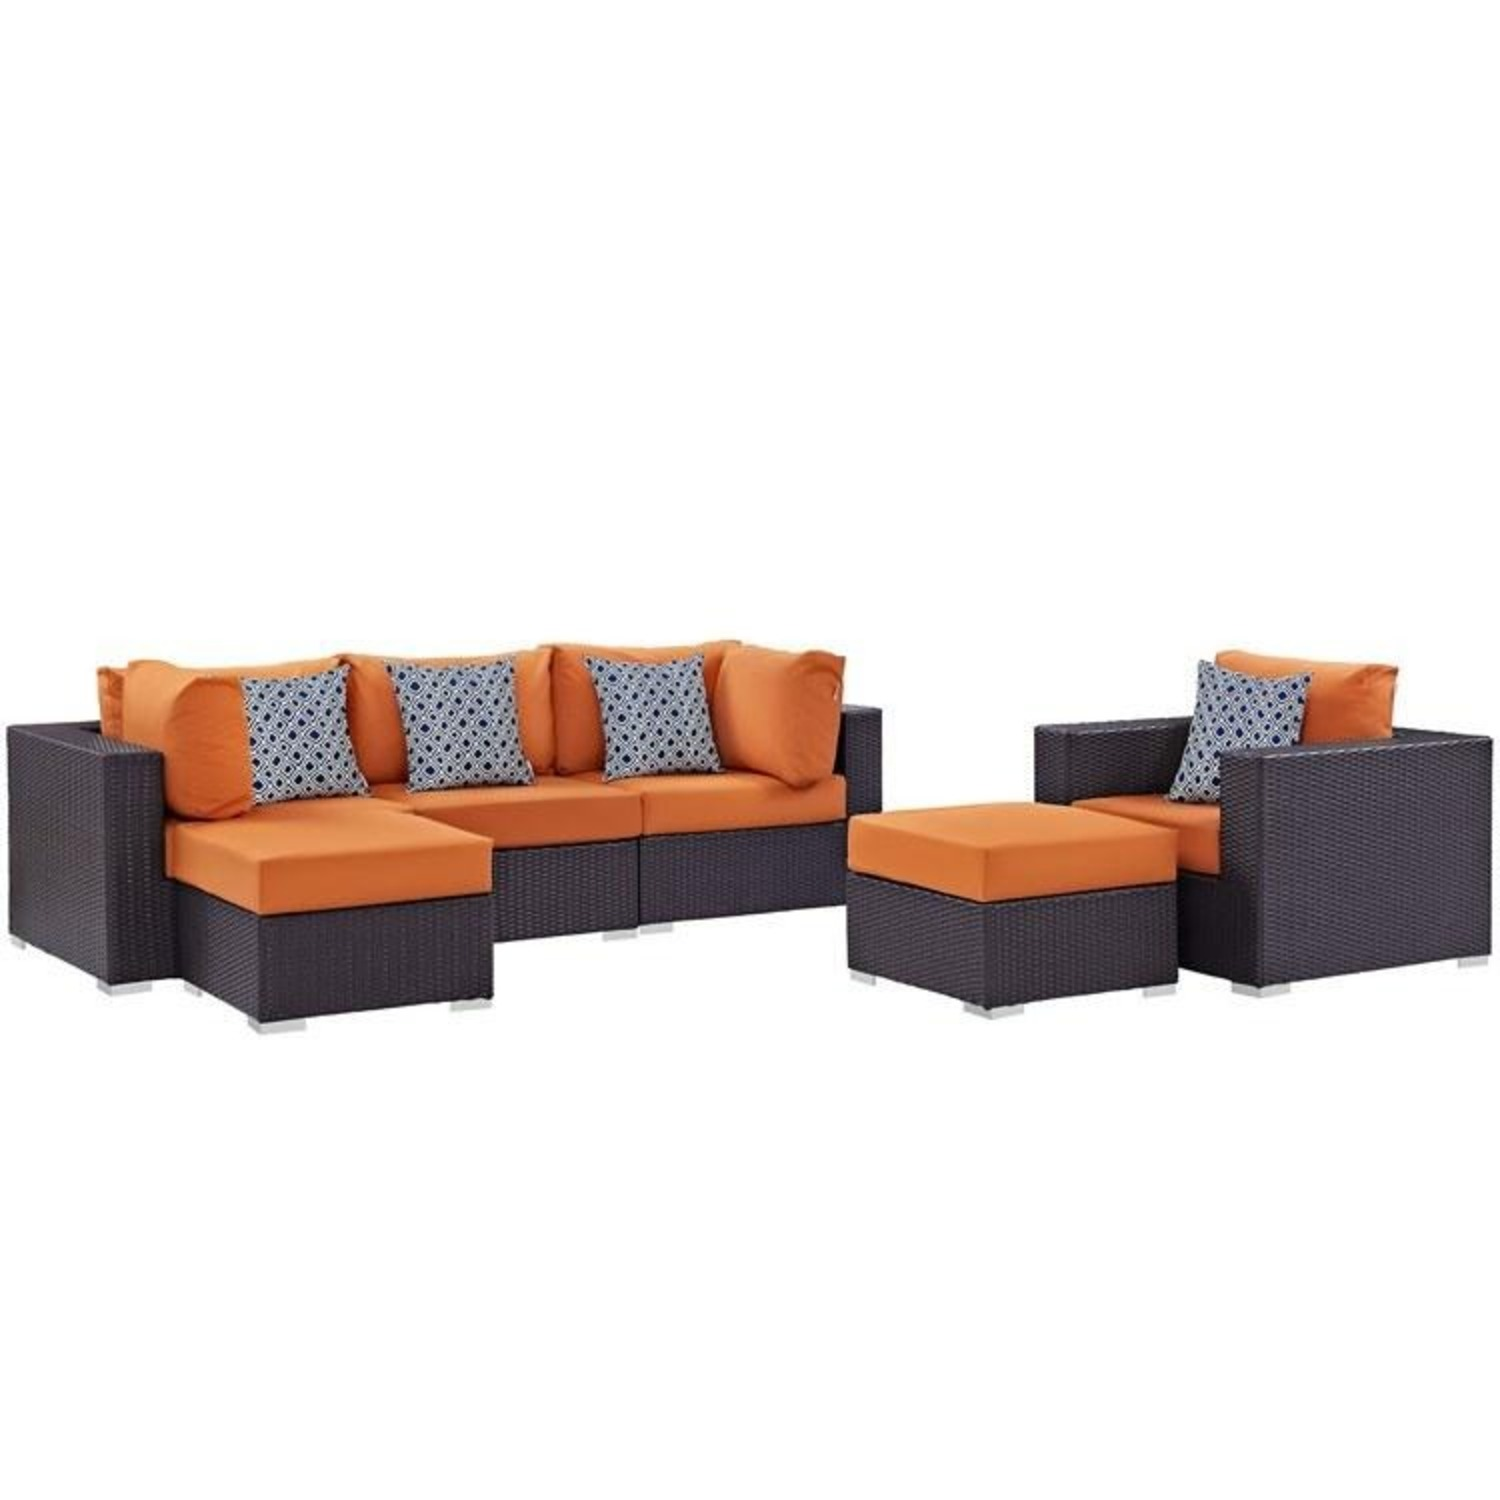 6-Piece Outdoor Sectional In Orange Fabric - image-0